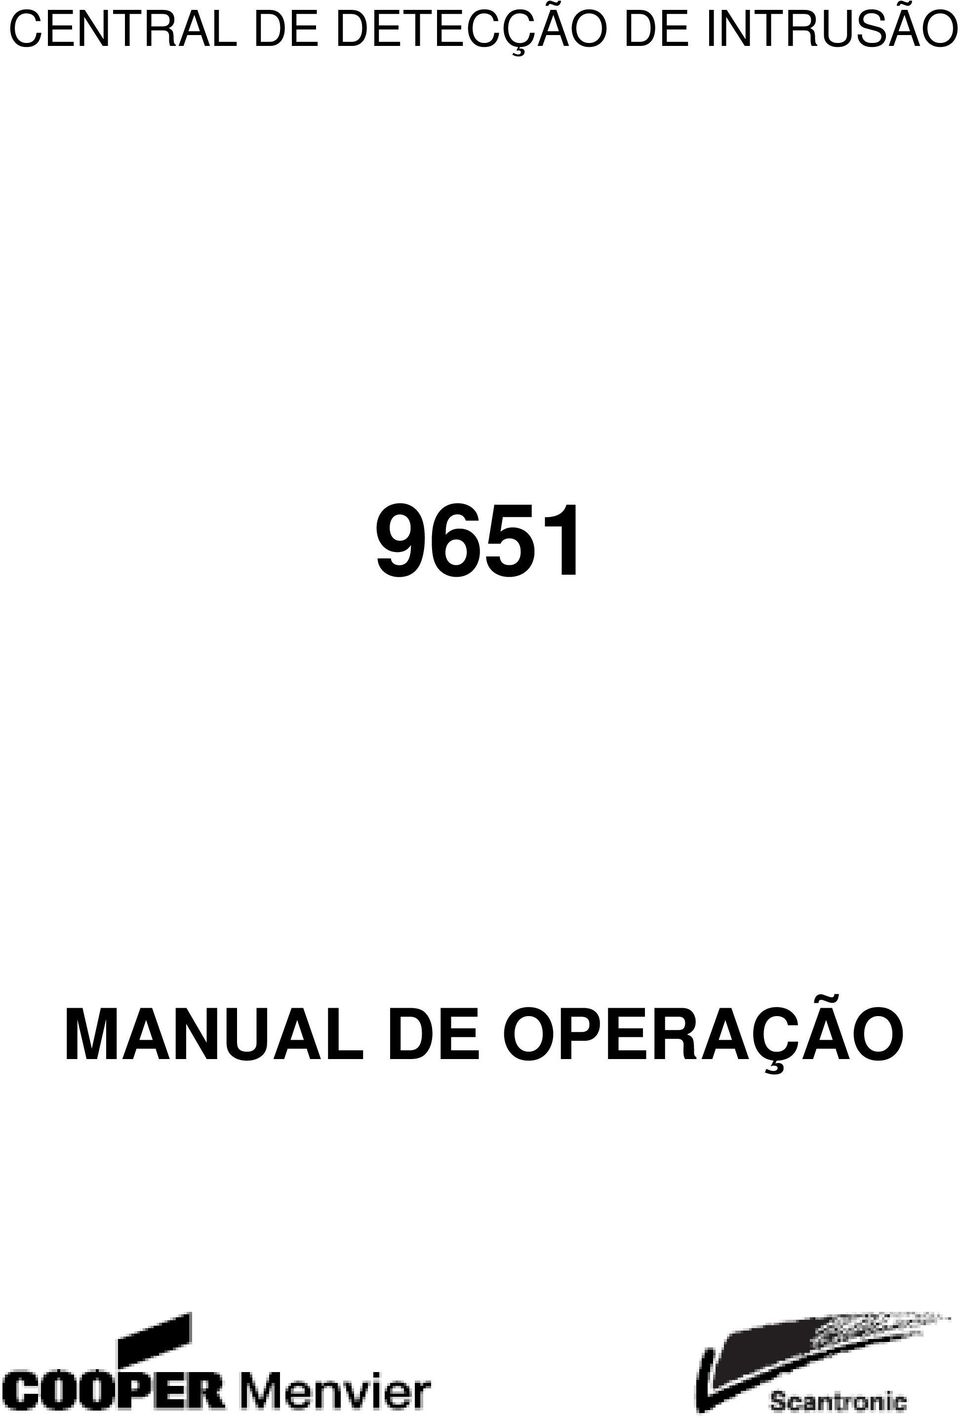 INTRUSÃO 9651